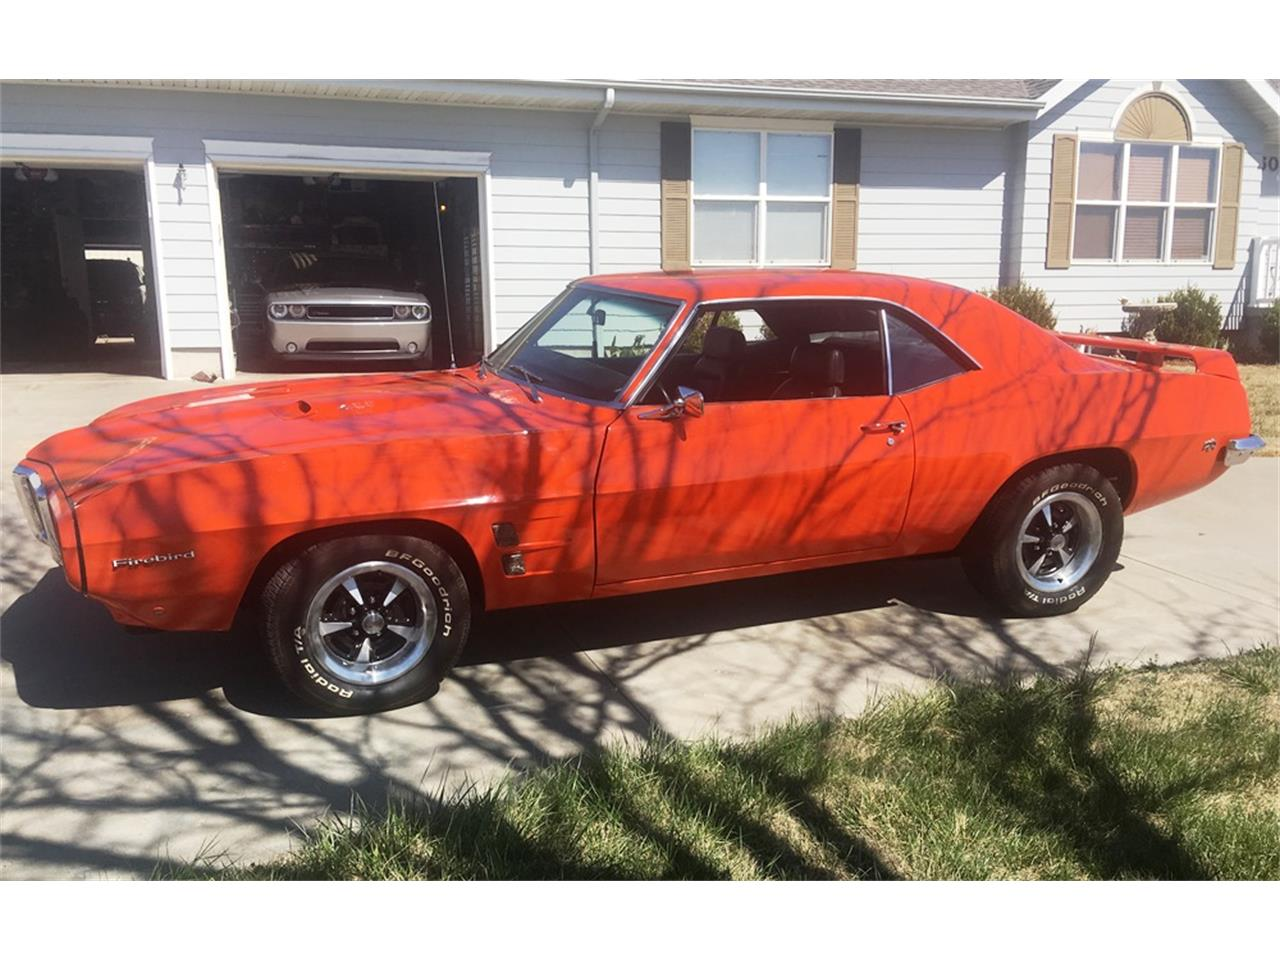 1969 Pontiac Firebird For Sale Cc 1141249 1960 Formula 400 Large Picture Of Classic Located In Great Bend Kansas Auction Vehicle Ogld